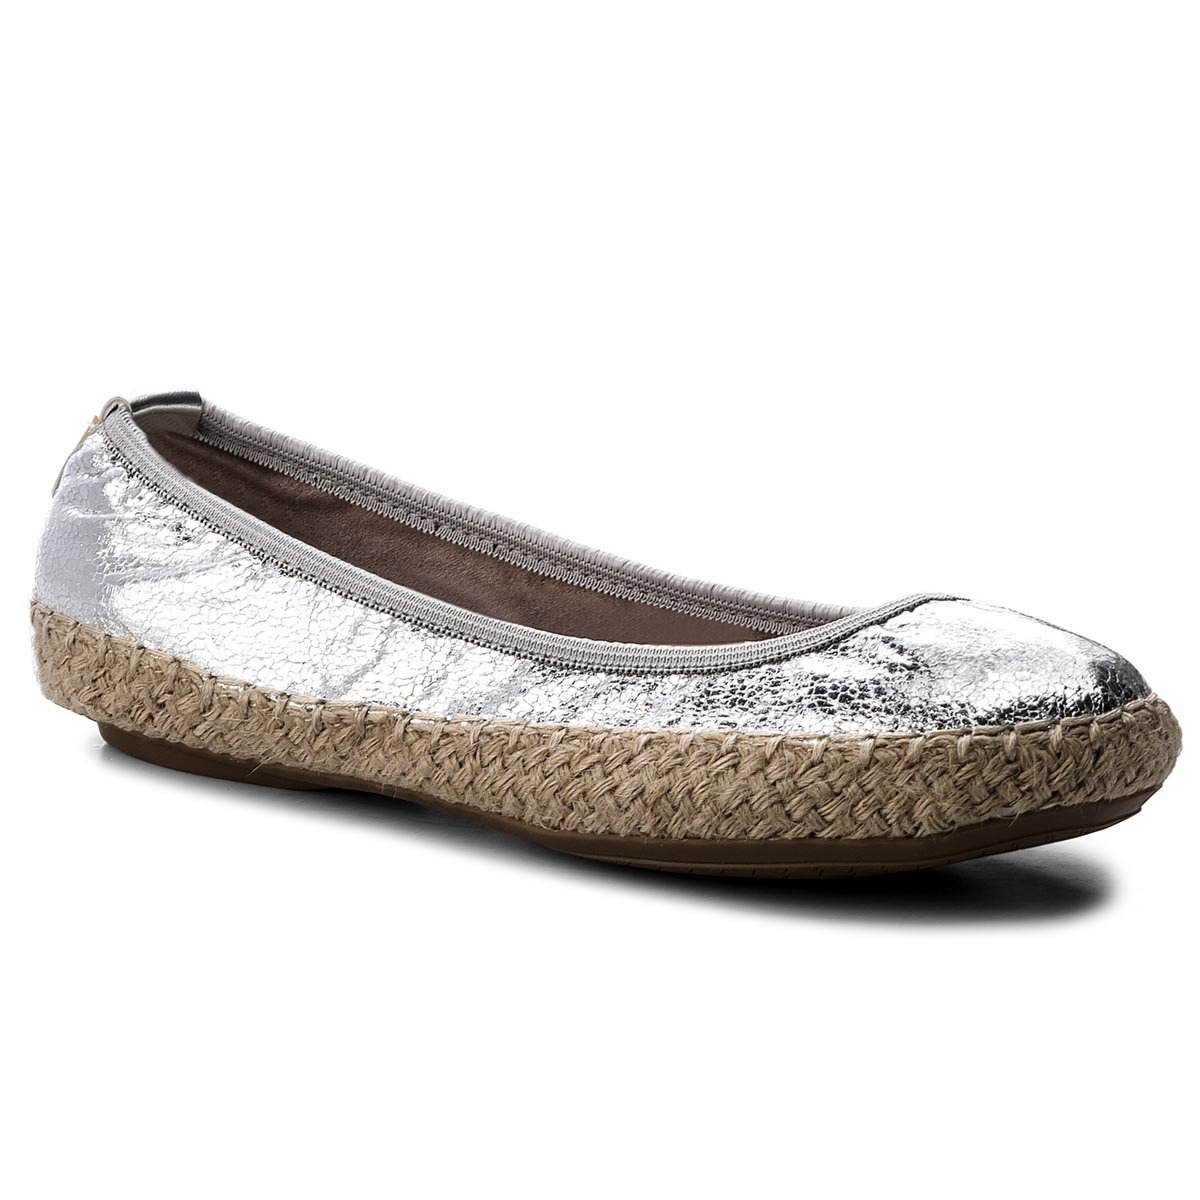 Espadrilles BUTTERFLY TWISTS - Gigi BT21-040-009 Silver